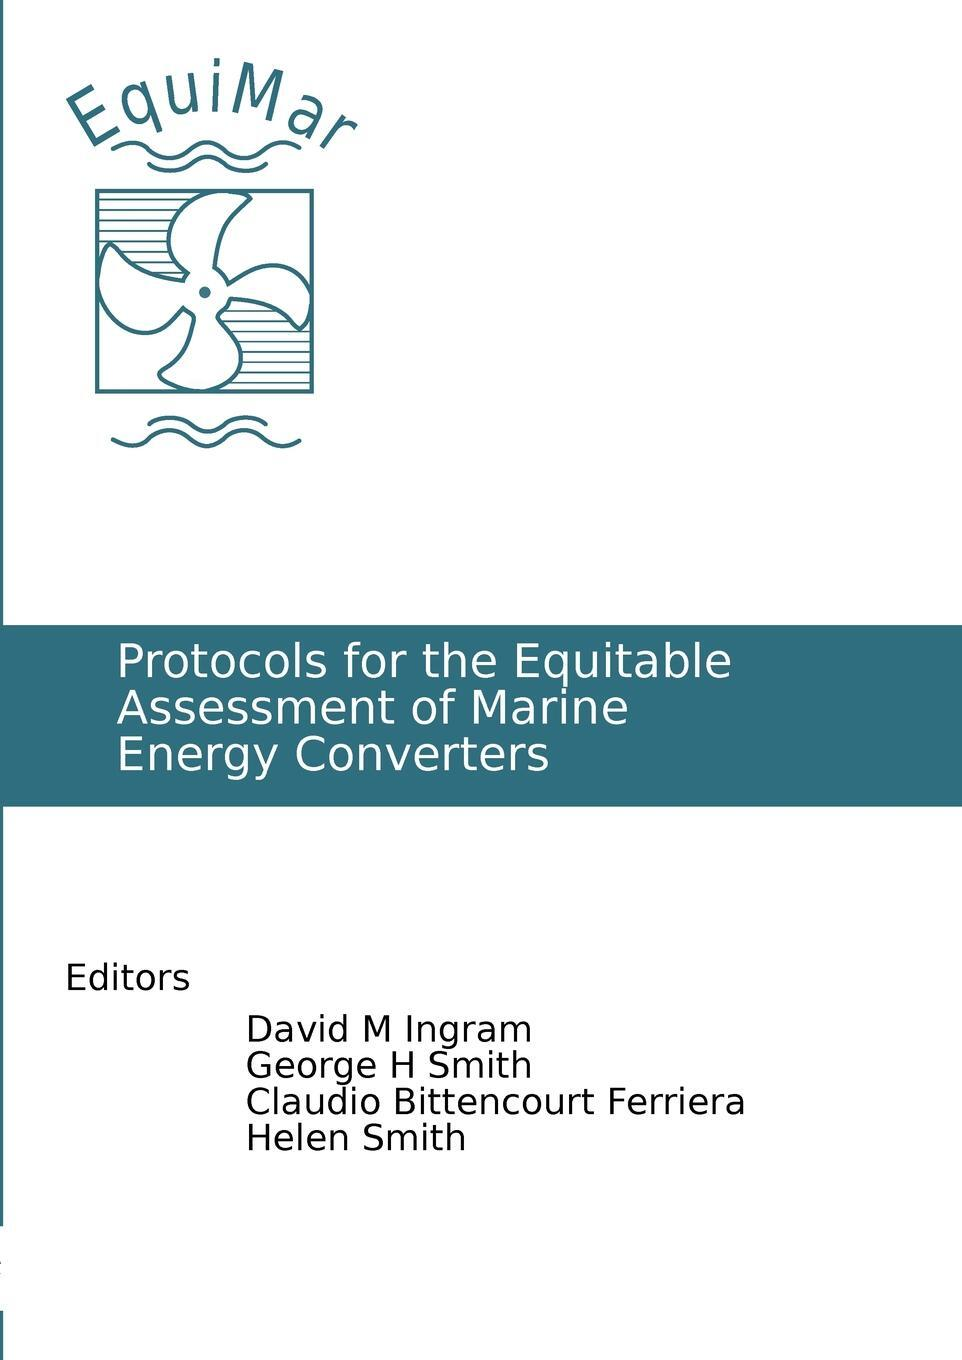 Protocols for the Equitable Assessment of Marine Energy Converters